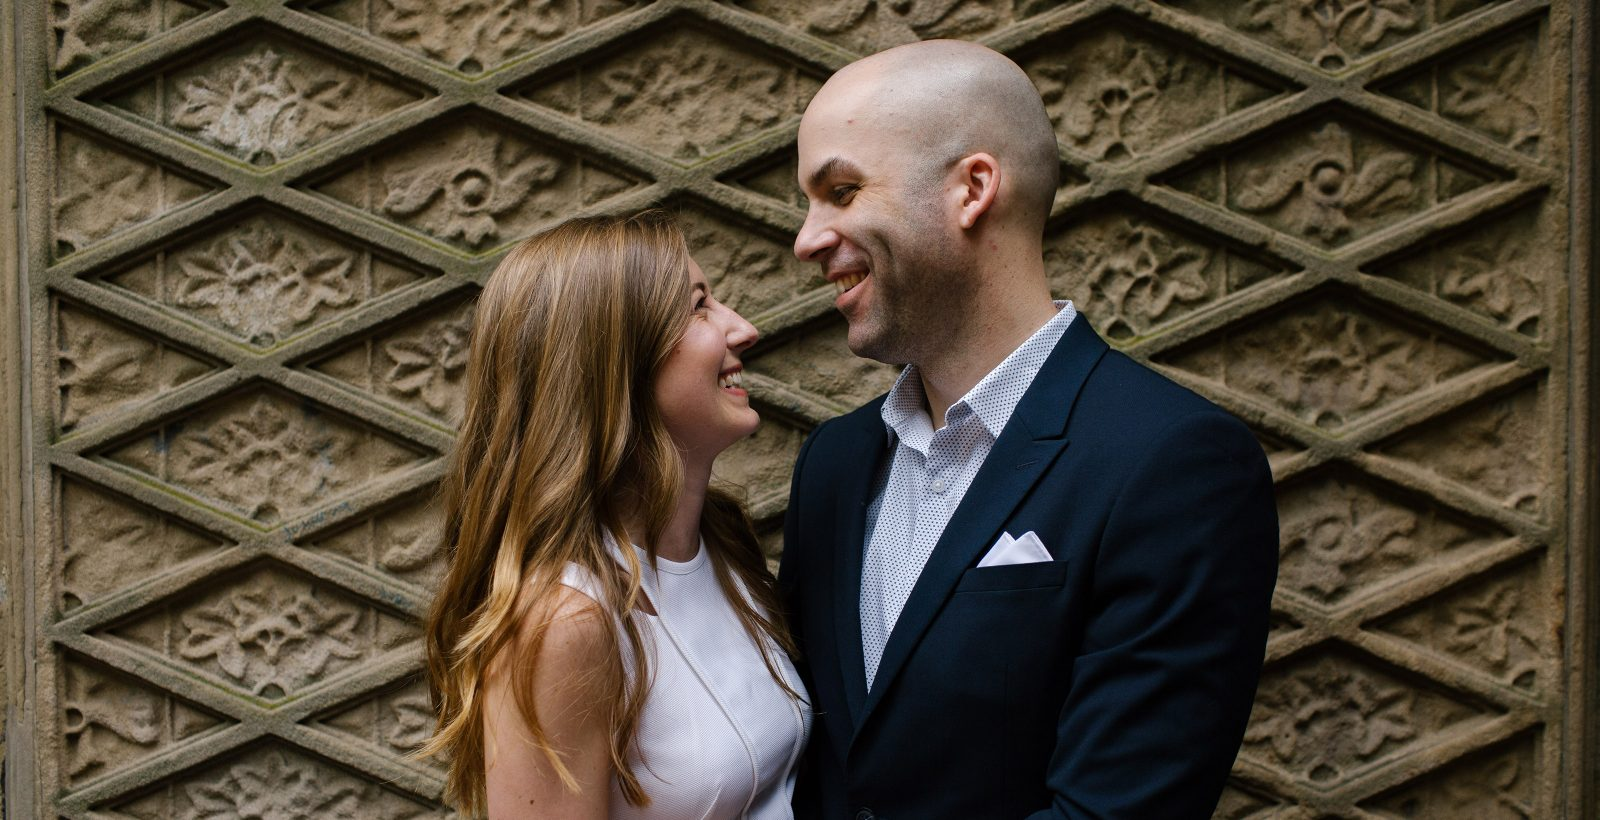 NYC Central Park Engagement at Bethesda Terrace   Kristie & Maclaine